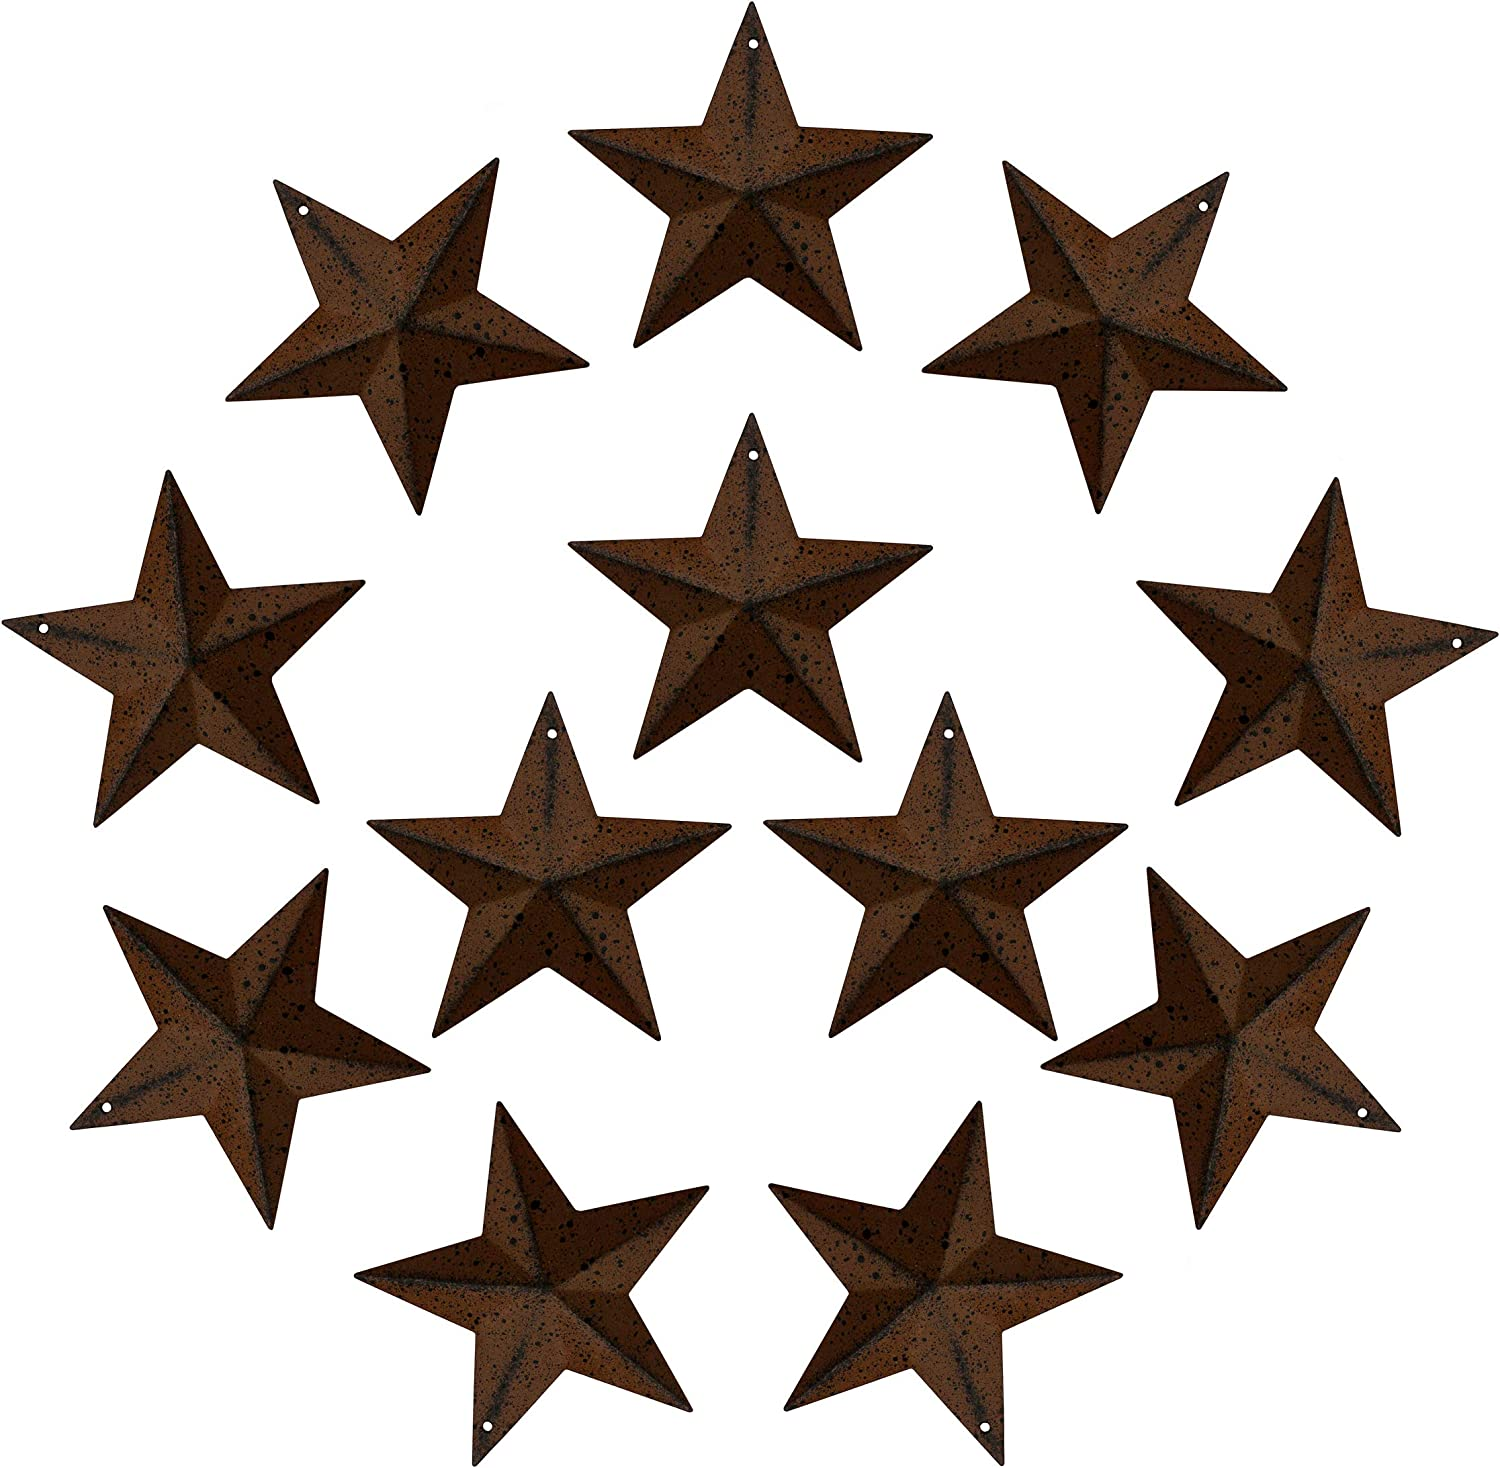 CVHOMEDECO. Primitives Rustic Antique Vintage Gifts Rusty/Black Metal Barn Star Wall/Door Decor, 3-Inch, Set of 12.